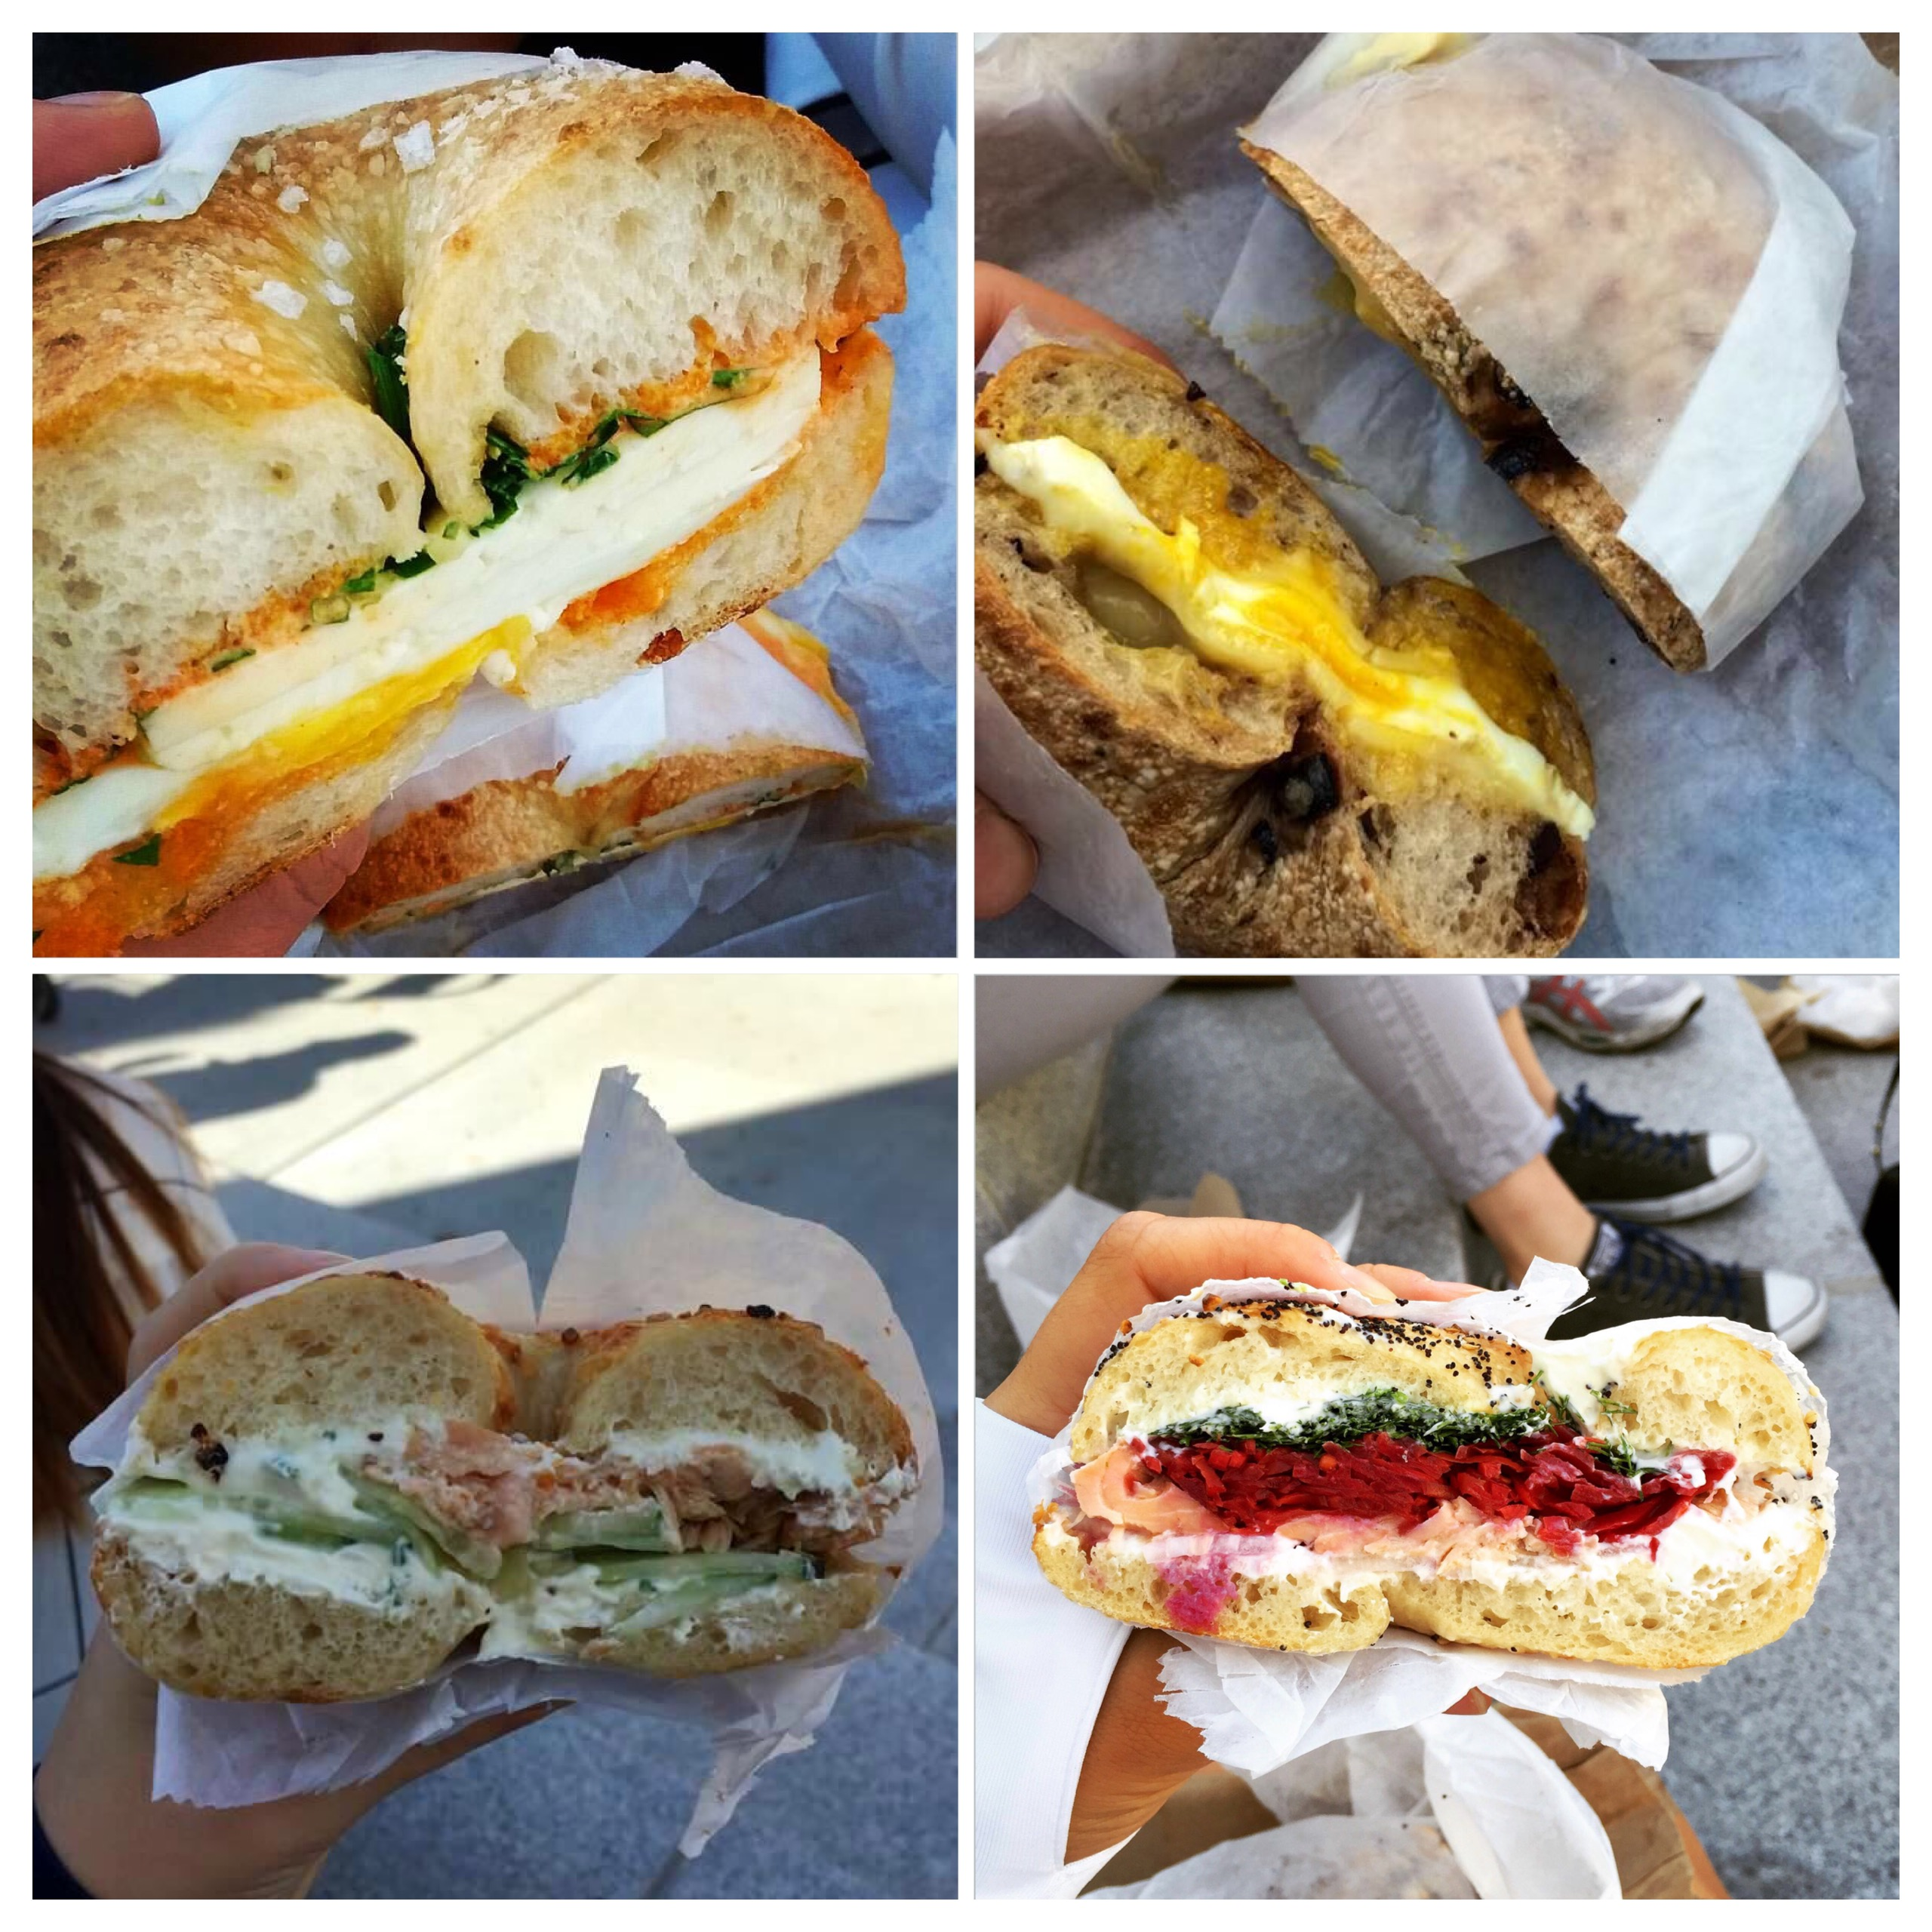 Some of our bagels. Photo courtesy of Stina Stannik, Allie Wainer, Sunny Wang, Ipek Emekli.